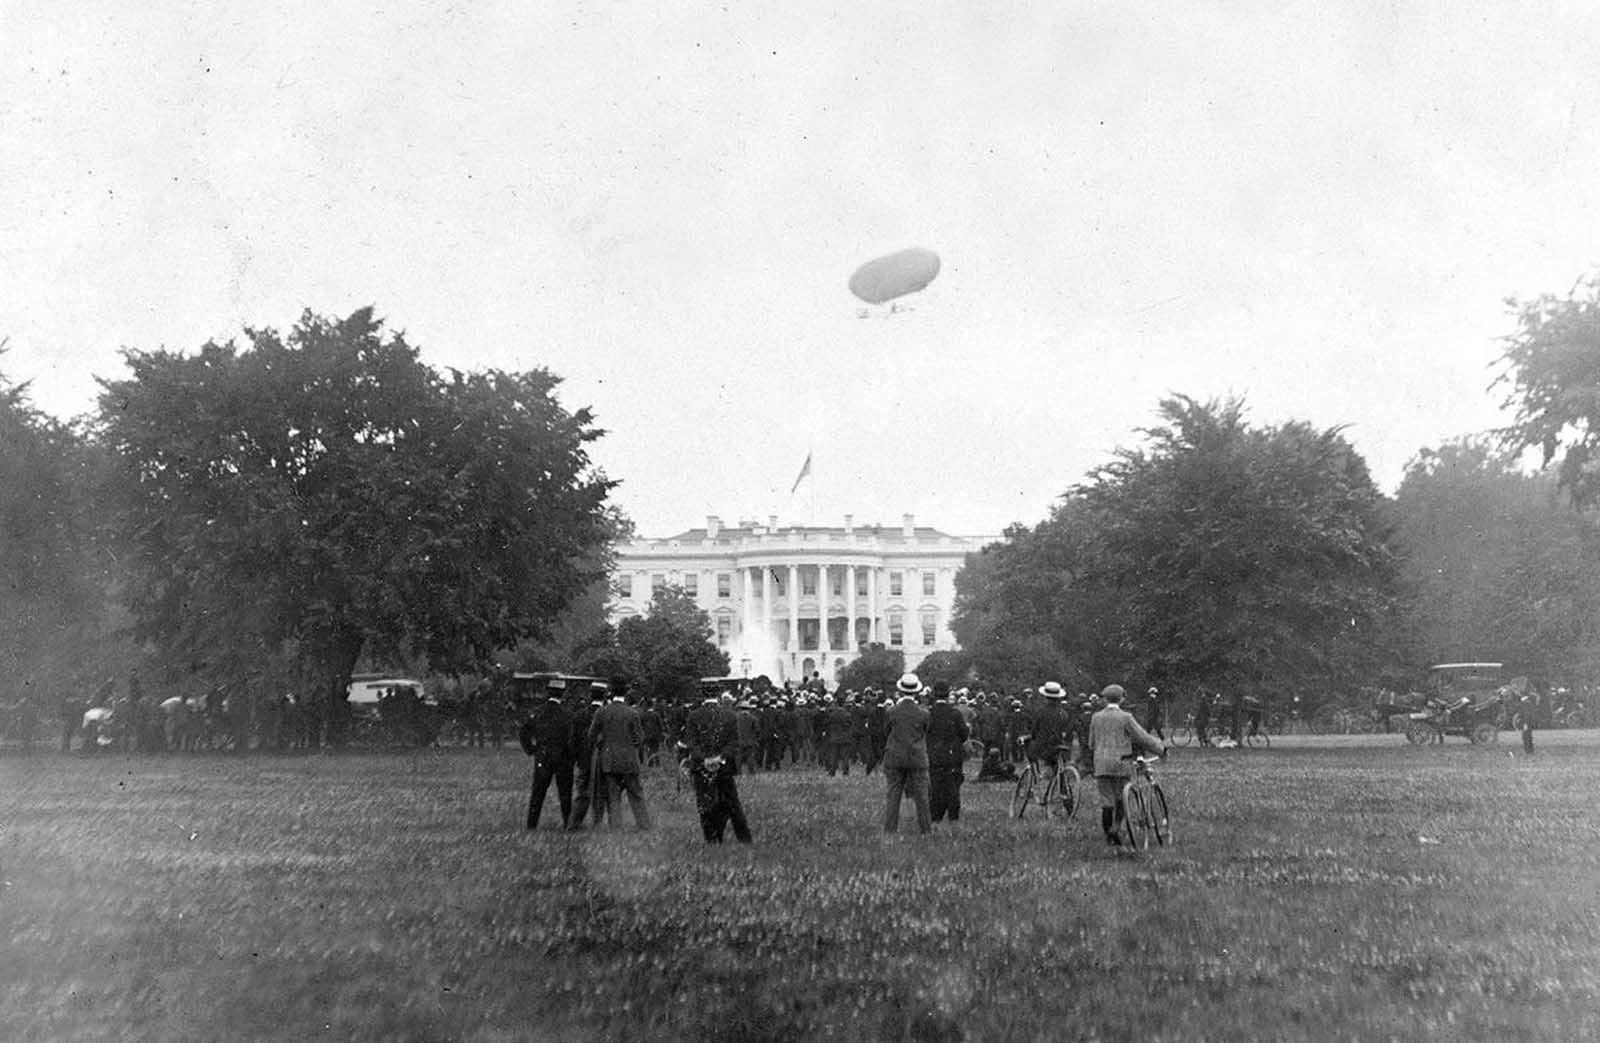 An airship flies above the White House in Washington, District of Columbia, in 1906.